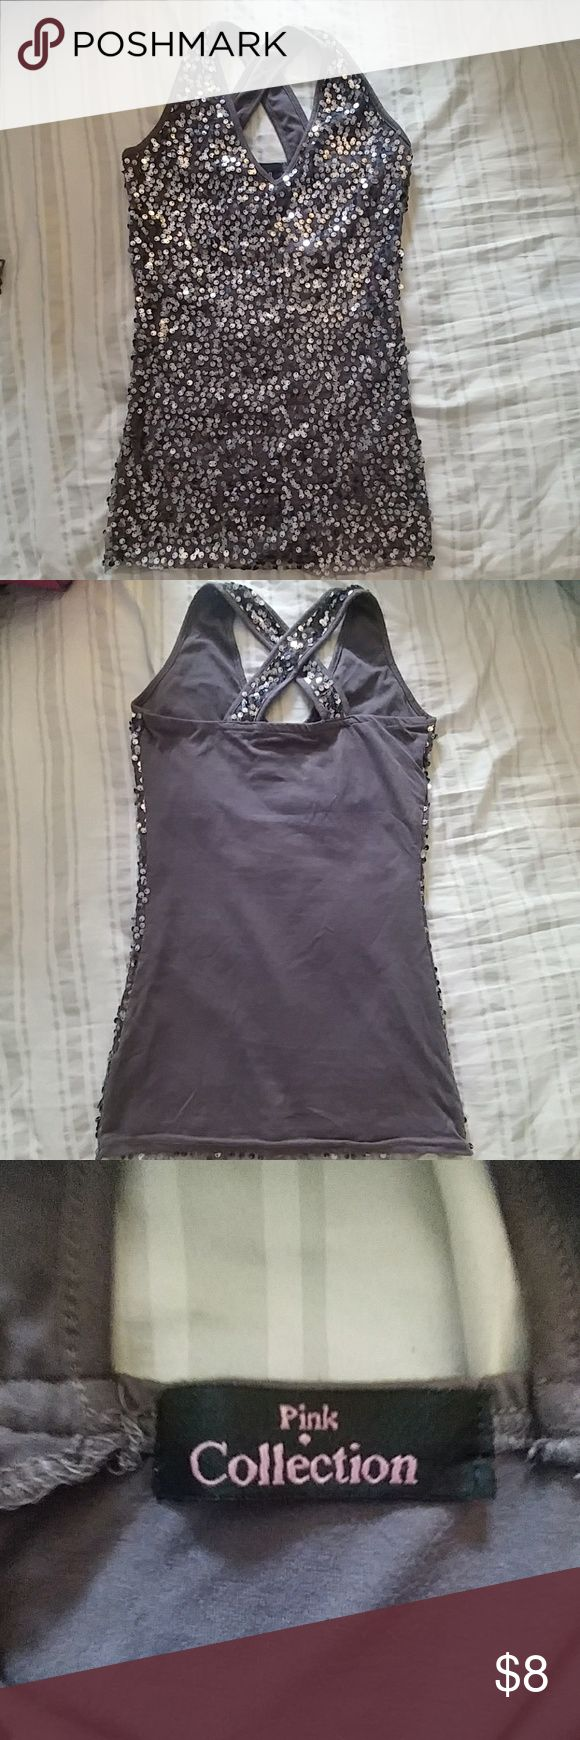 Tang top Grey tank top  Sequined fabric Size S Normal wear Tops Tank Tops